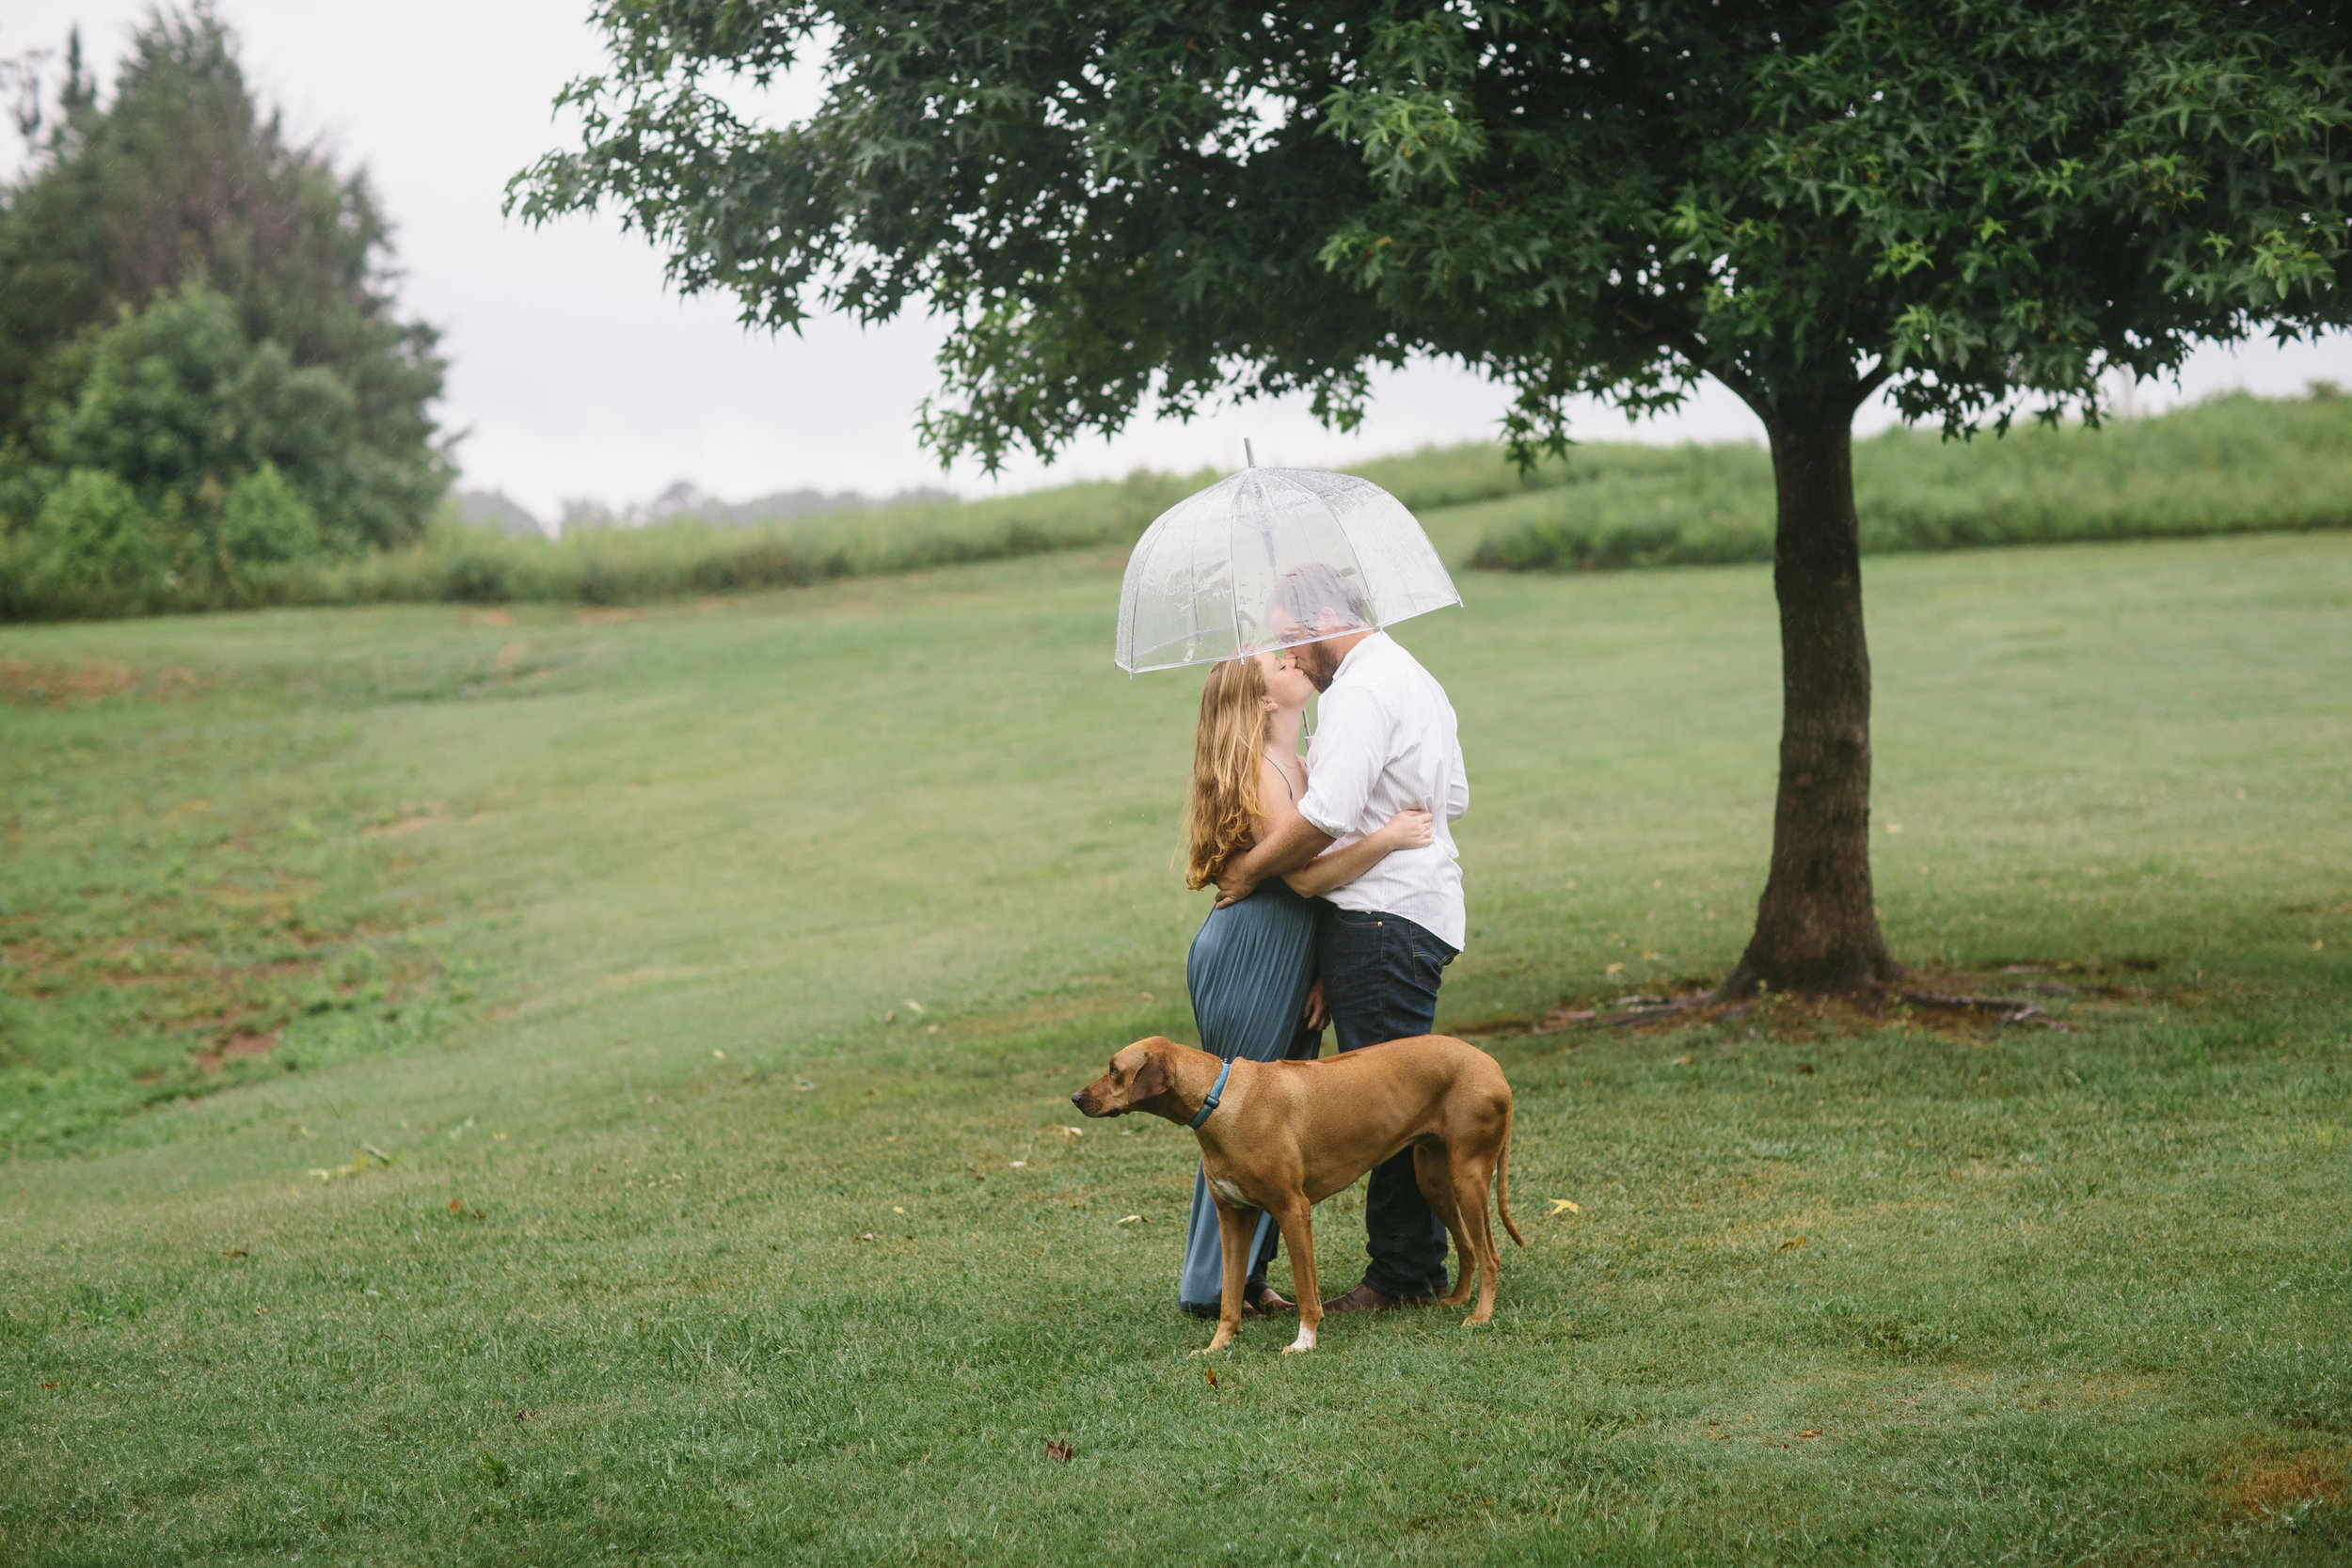 rainy engagement session.engagement photos in the rain.kiss in the rain.umbrellas.JPG